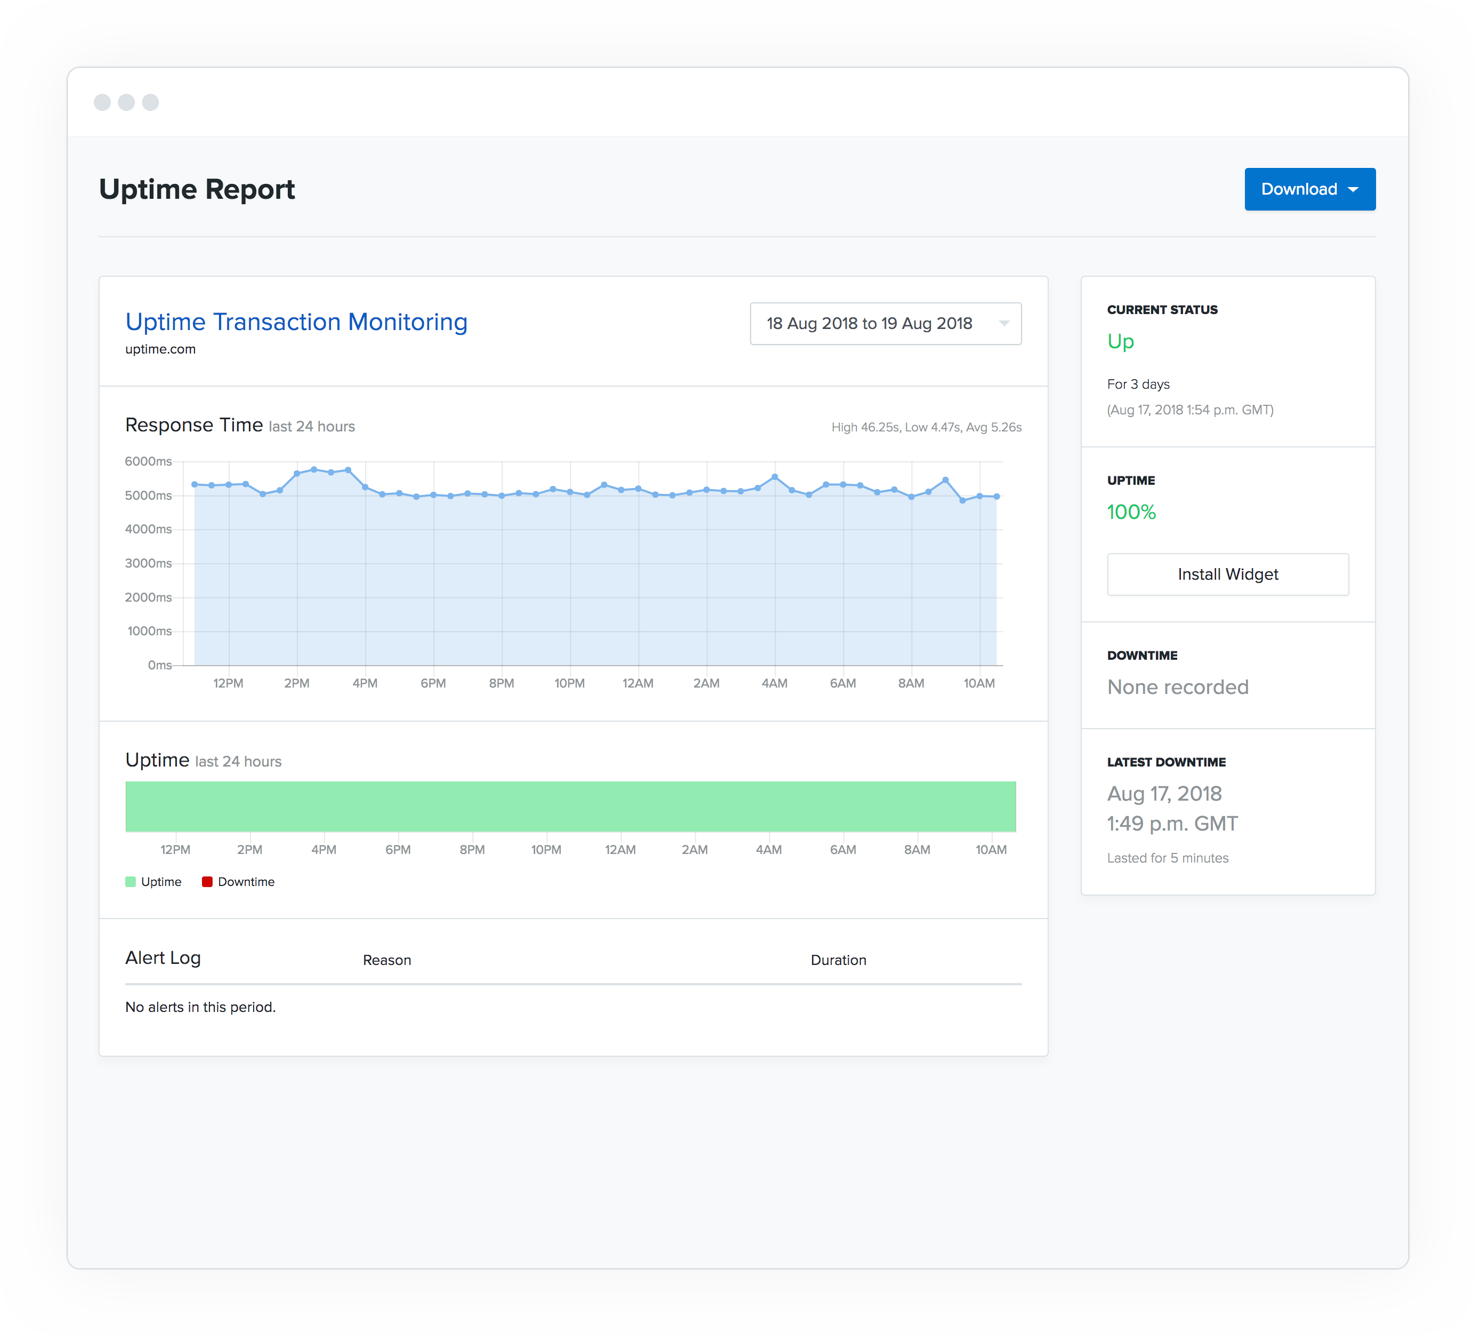 Enterprise-Grade Transaction Monitoring - Uptime.com's customizable alert system keeps a constant watch on your critical applications, notifying key personnel of downtime events through SMS, email, and push notifications.